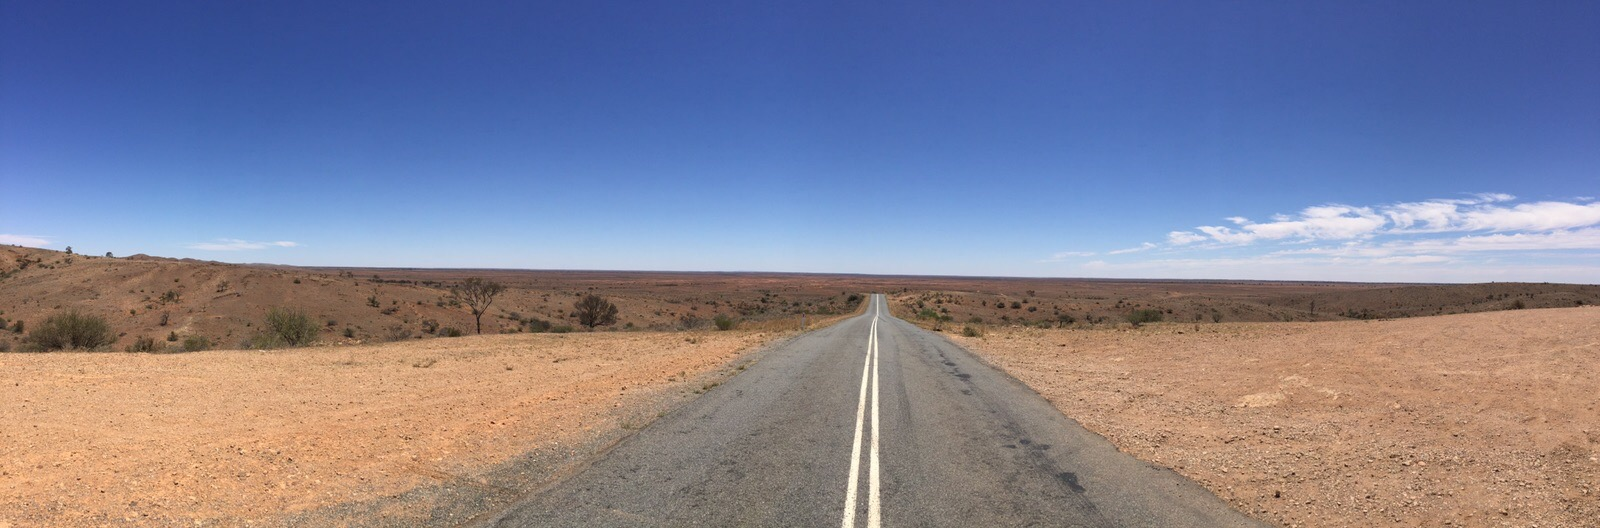 Outback, Australia, featured